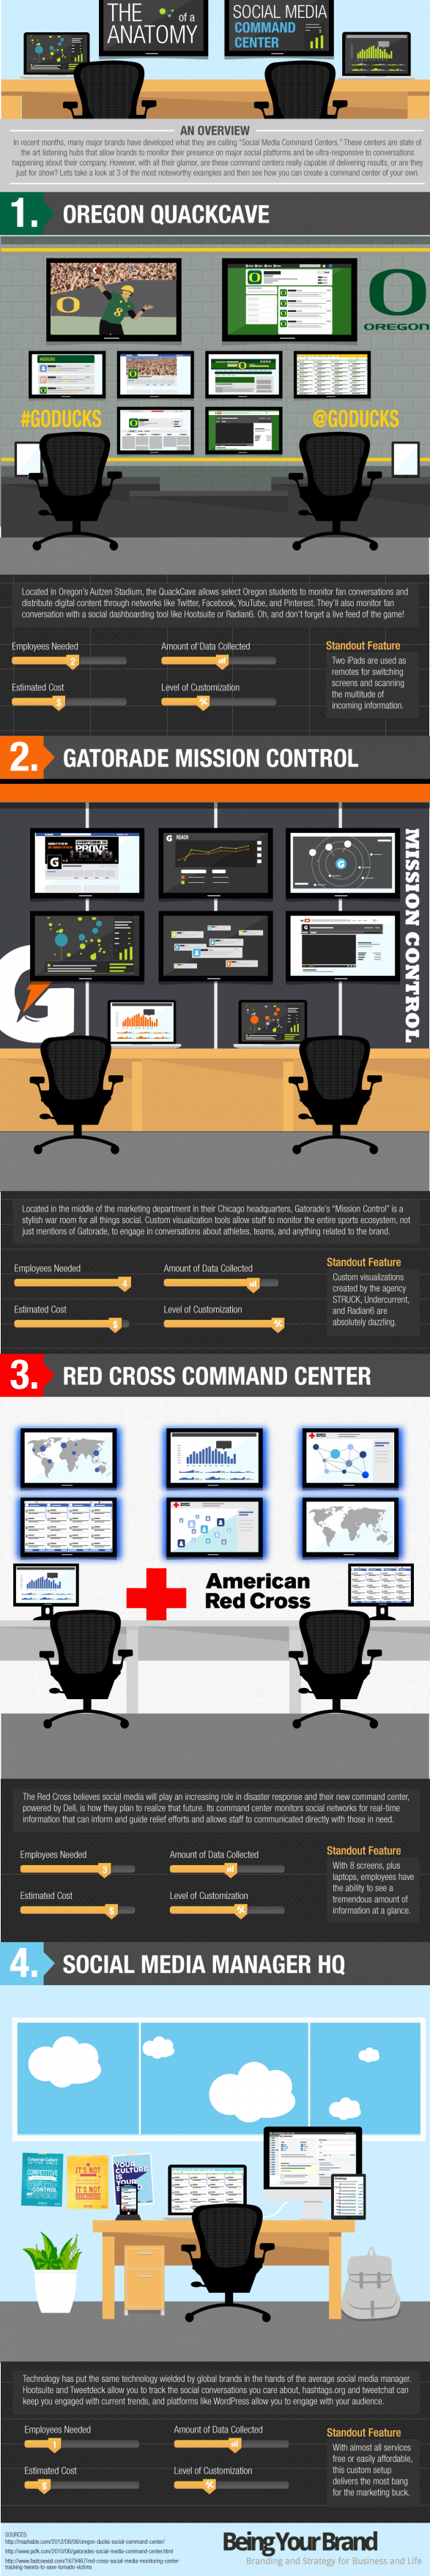 The Anatomy of a Social Media Command Center